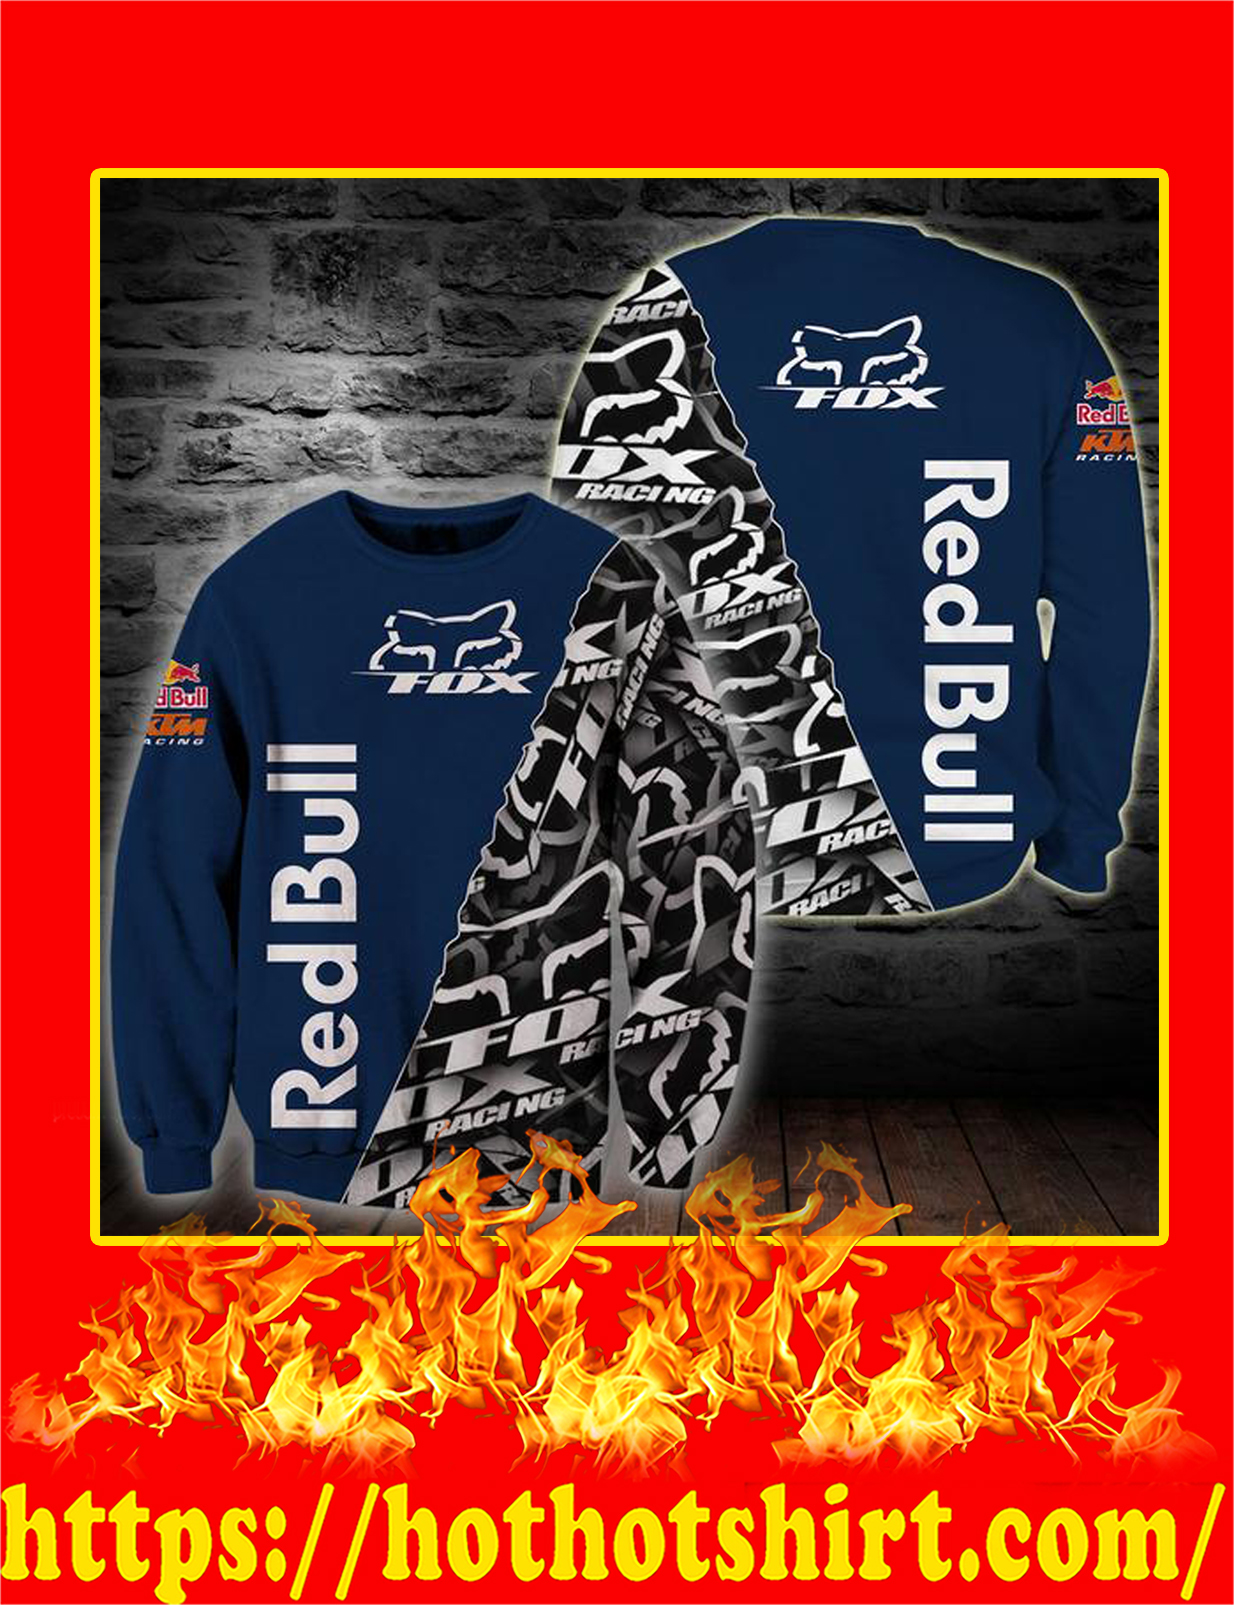 Fox Racing Redbull 3D sweatshirt